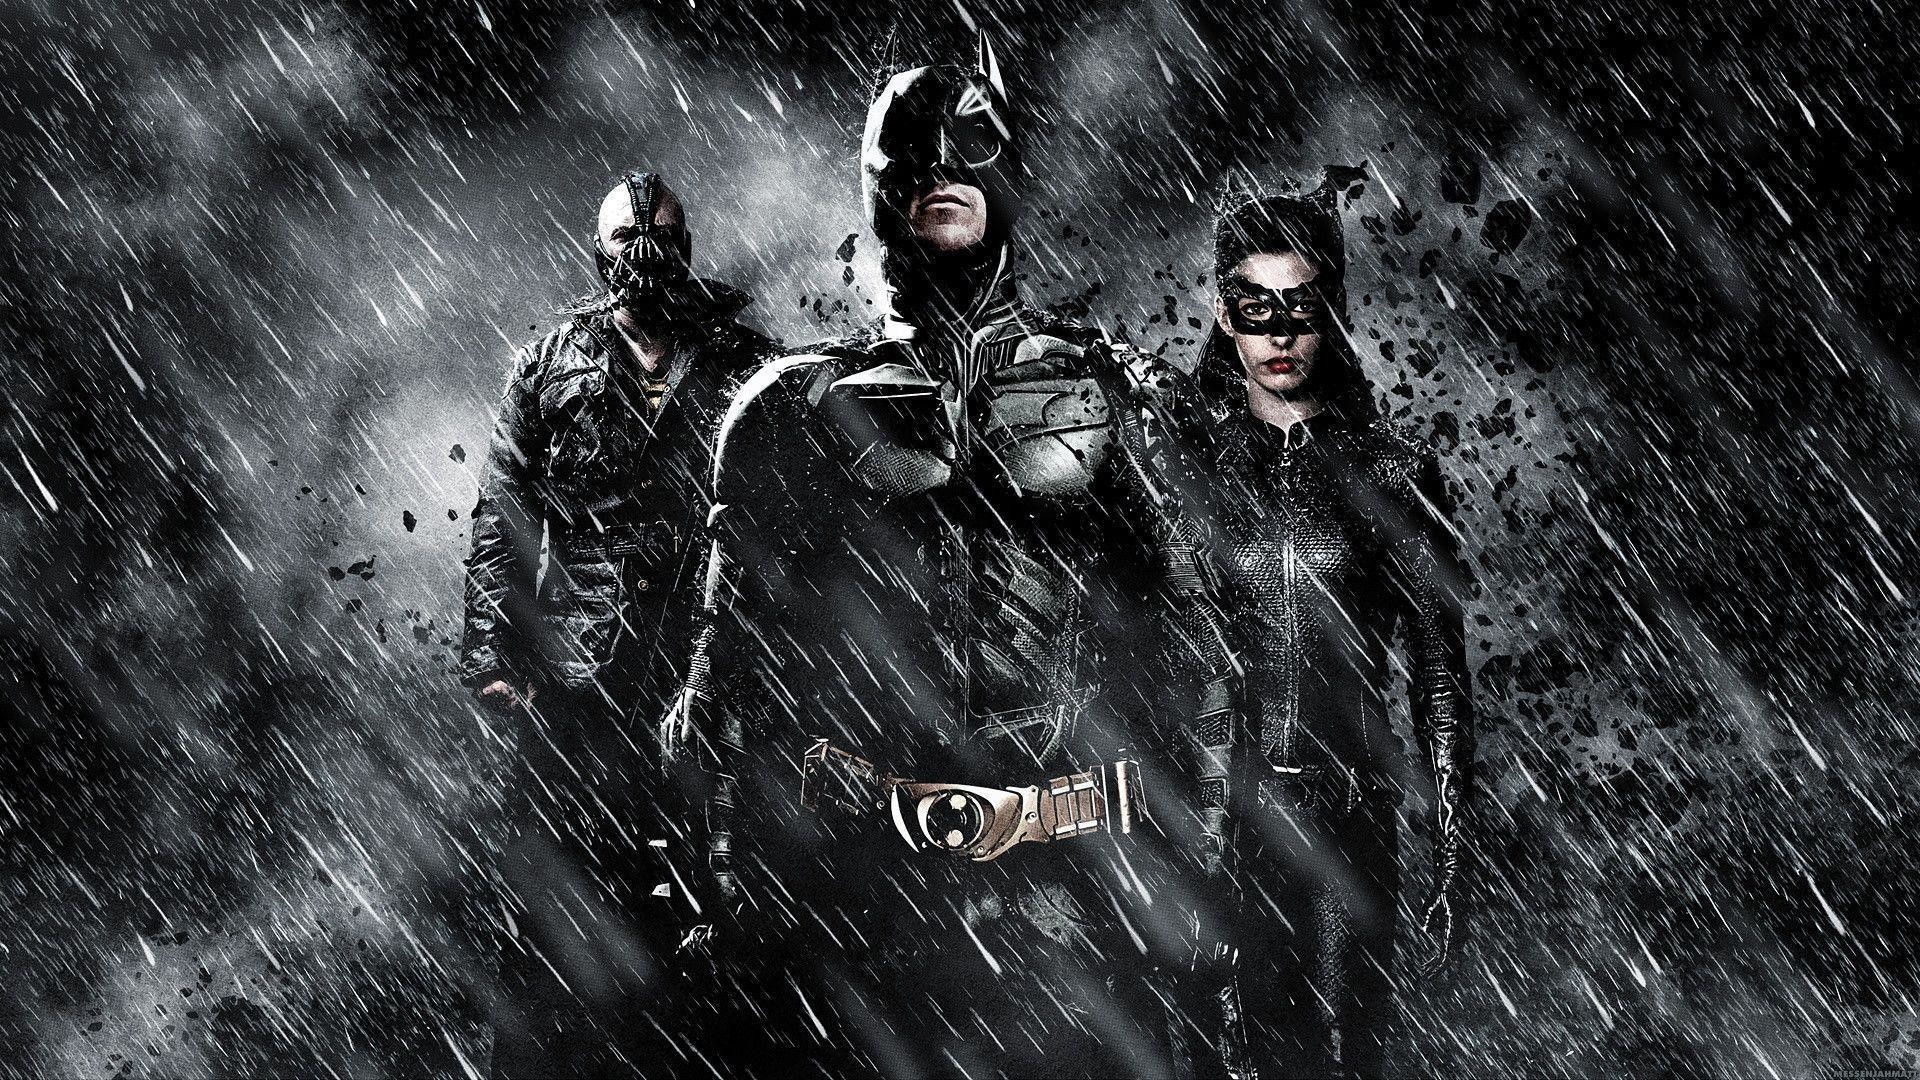 1920x1080 The Dark Knight Rises HD Wallpaper |  resolution .